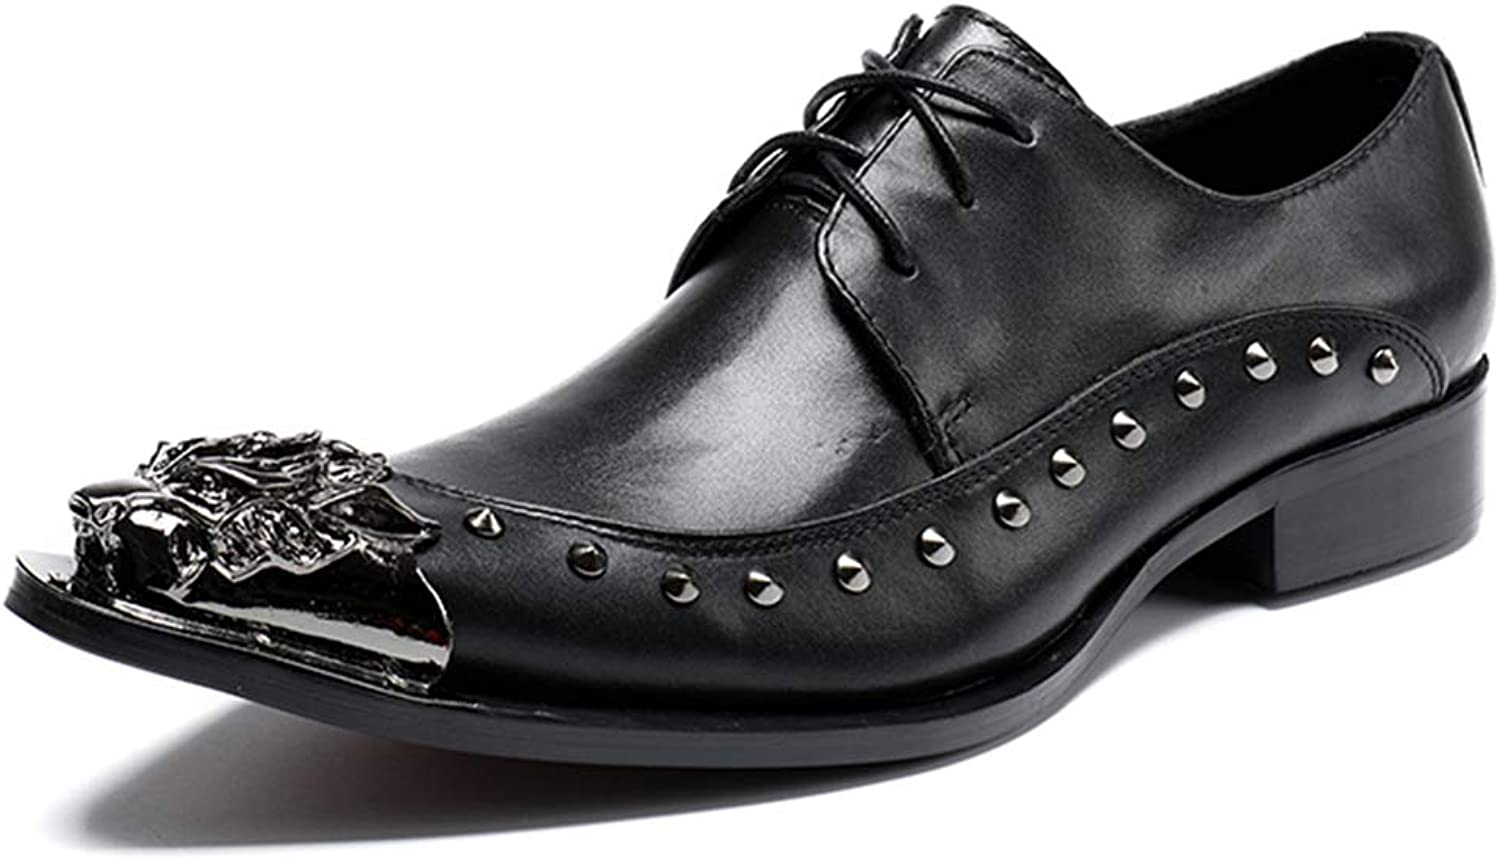 Men's Derby Formal Dress shoes Lace Up Genuine Leather Metal Pointed Toe Oxford shoes for Gent Work Utility Footwear